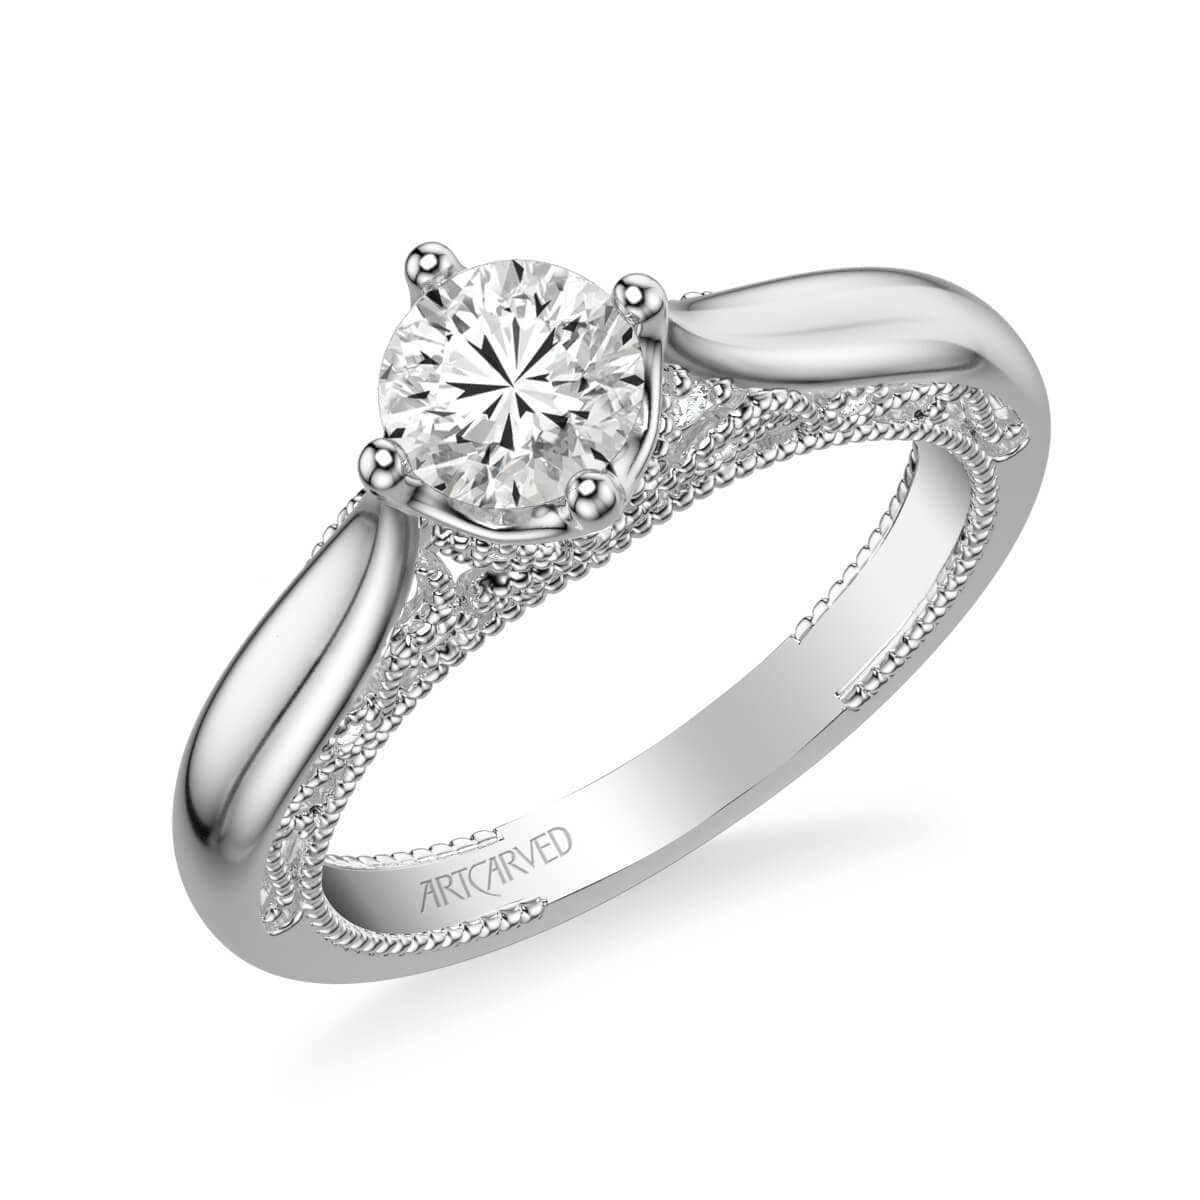 Gayla Vintage Solitaire Heritage Collection Diamond Engagement Ring